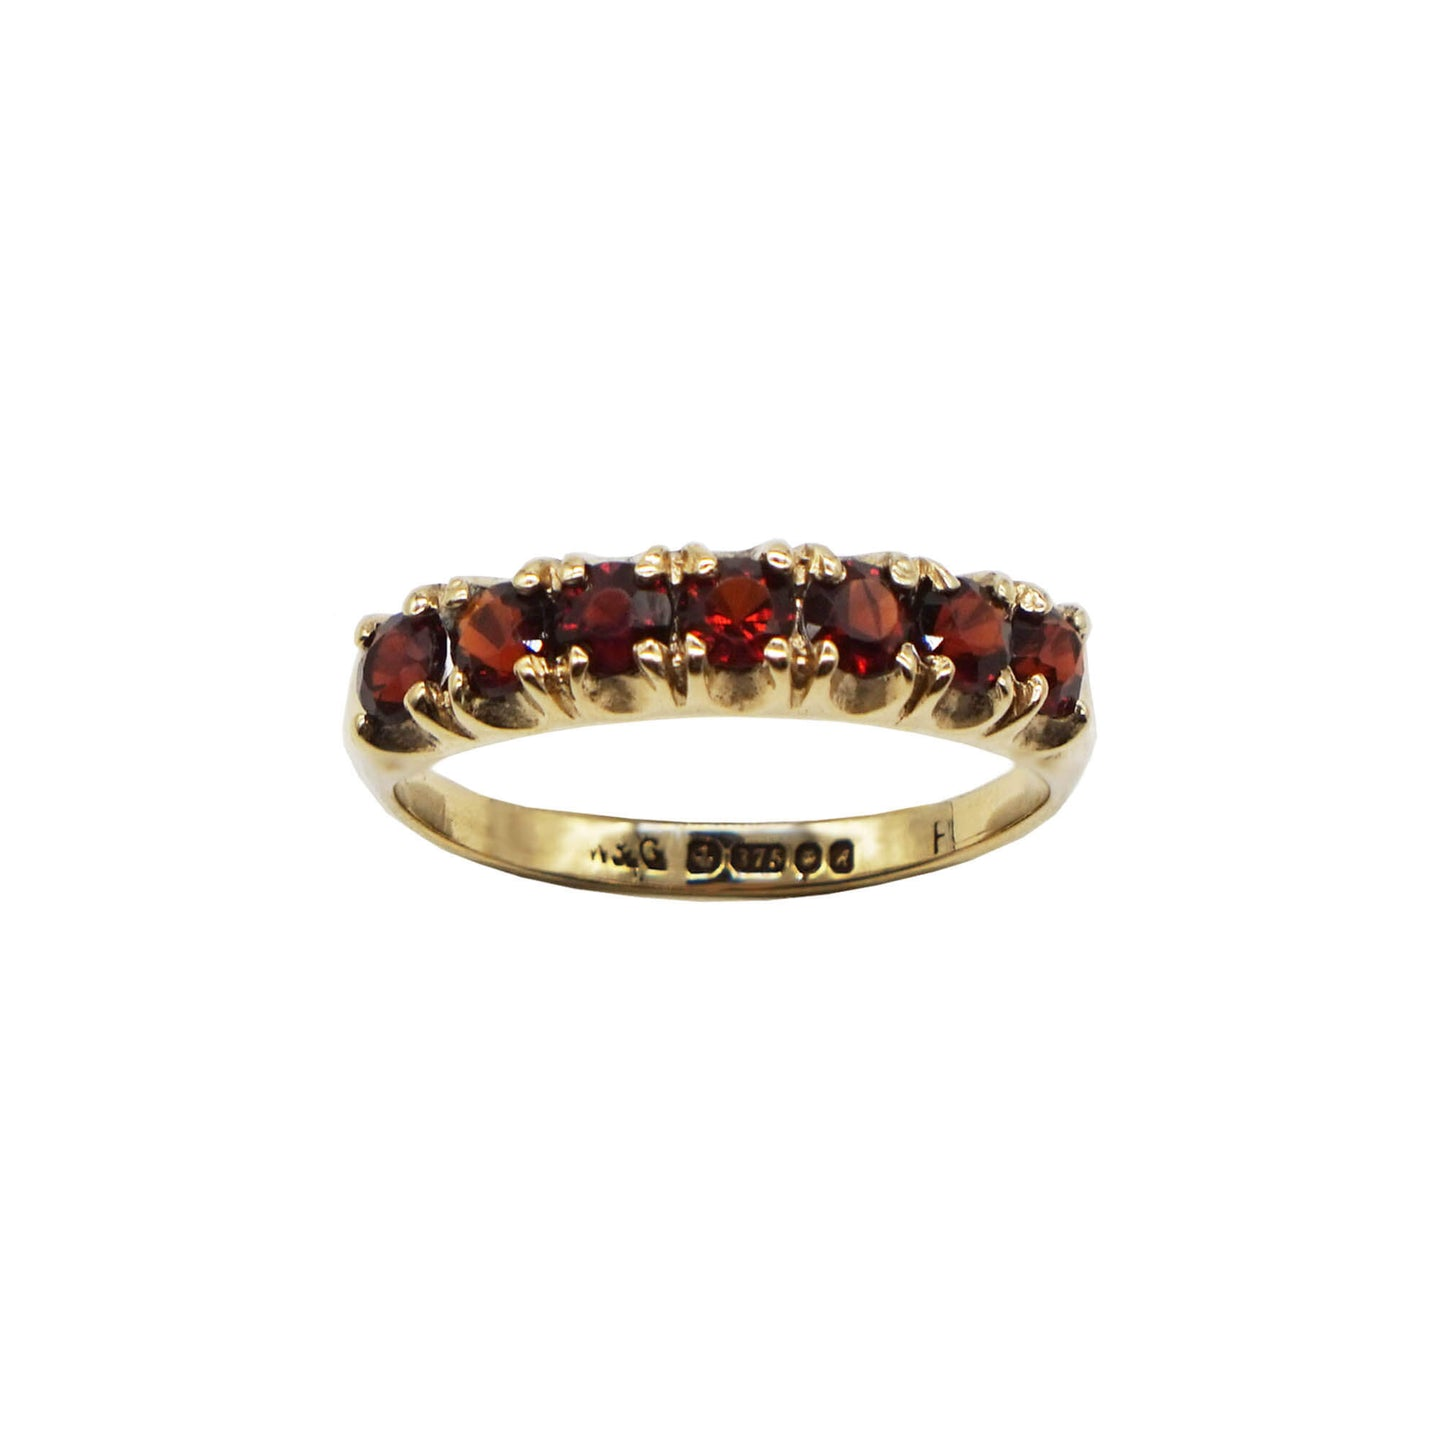 Close up Vintage 9K Gold Garnet Half Eternity Ring. 7 set  Red Garnet stones. Hallmarks can be seen on inner band. Background white.